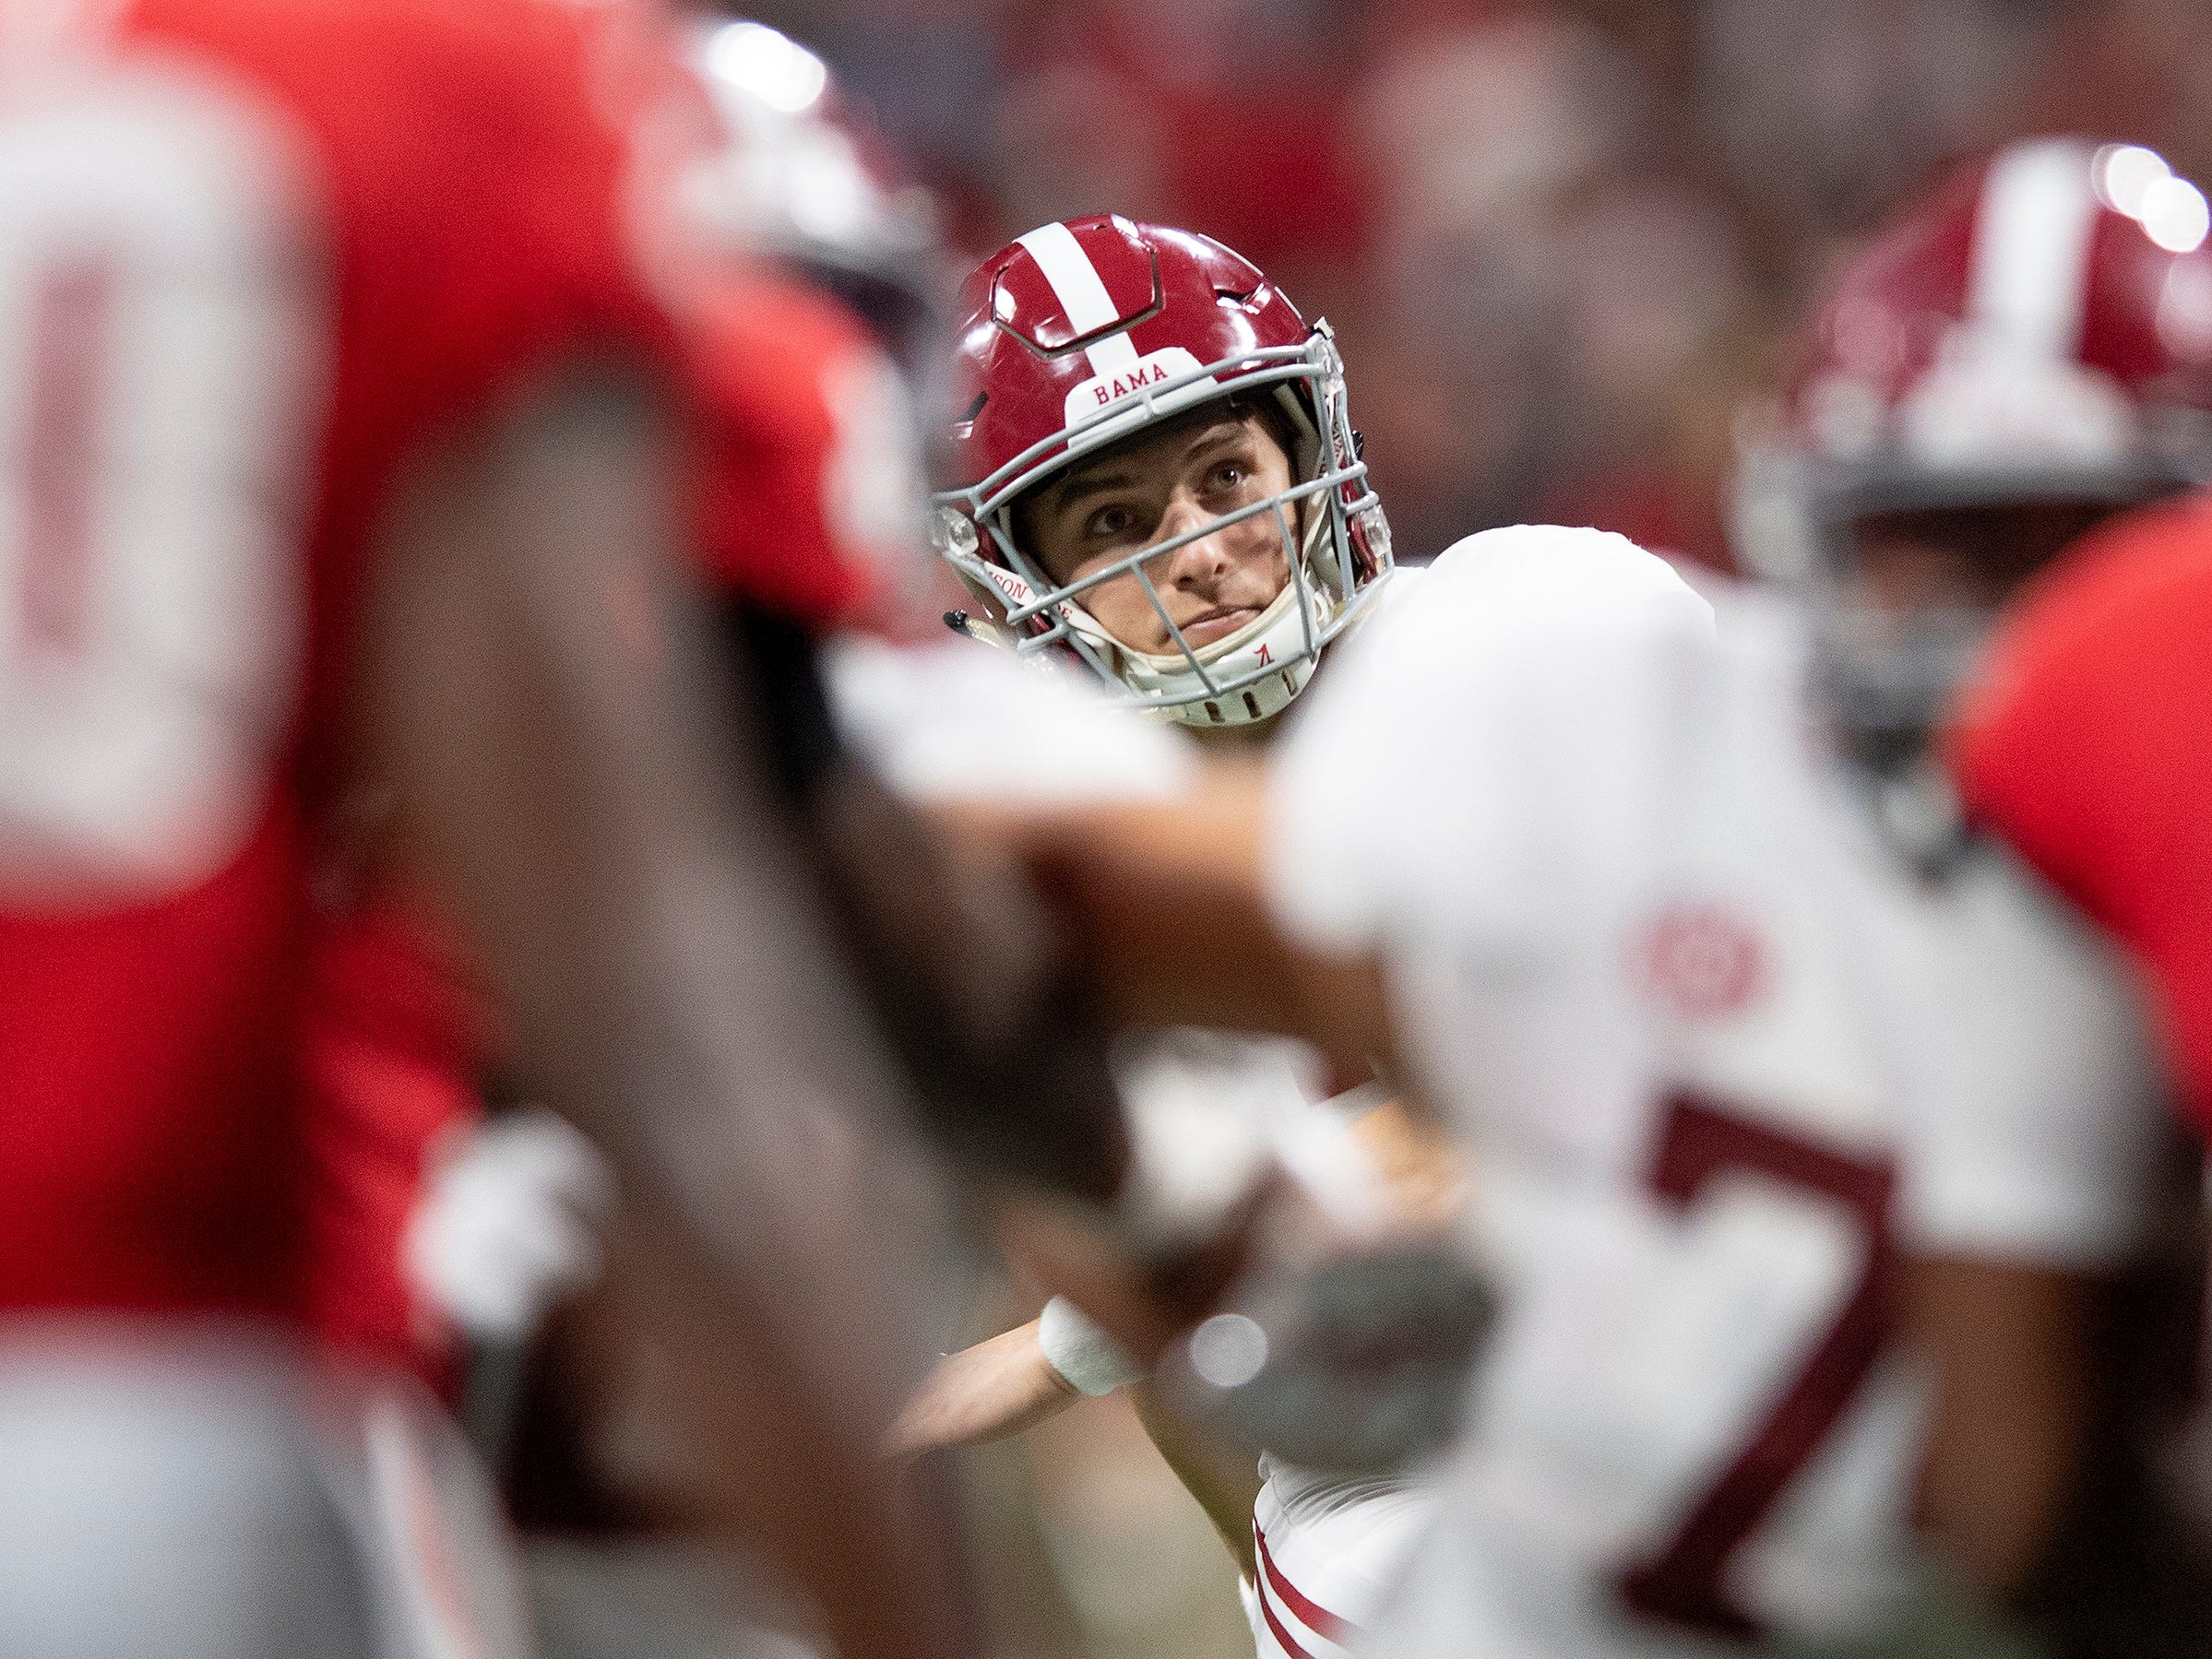 Alabama kicker Joseph Bulovas (97) kicks an extra point against Georgia during first half action of the SEC Championship Game at Mercedes Benz Stadium in Atlanta, Ga., on Saturday December 1, 2018.